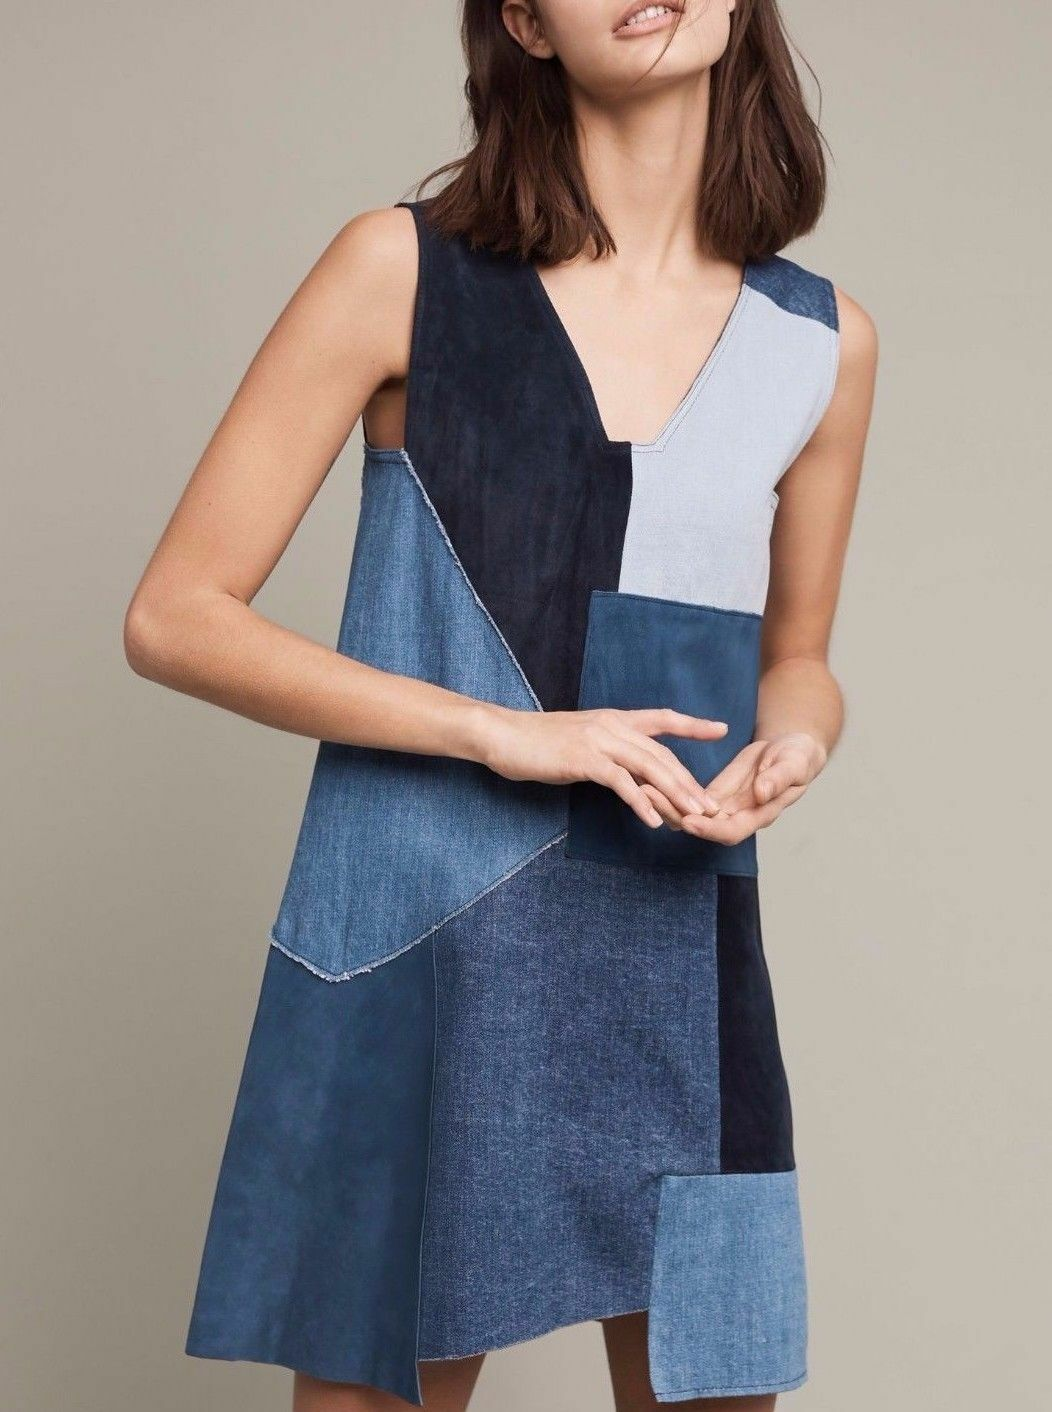 New Anthropologie MIH Patchwork Marten Dress  Sz S NWT